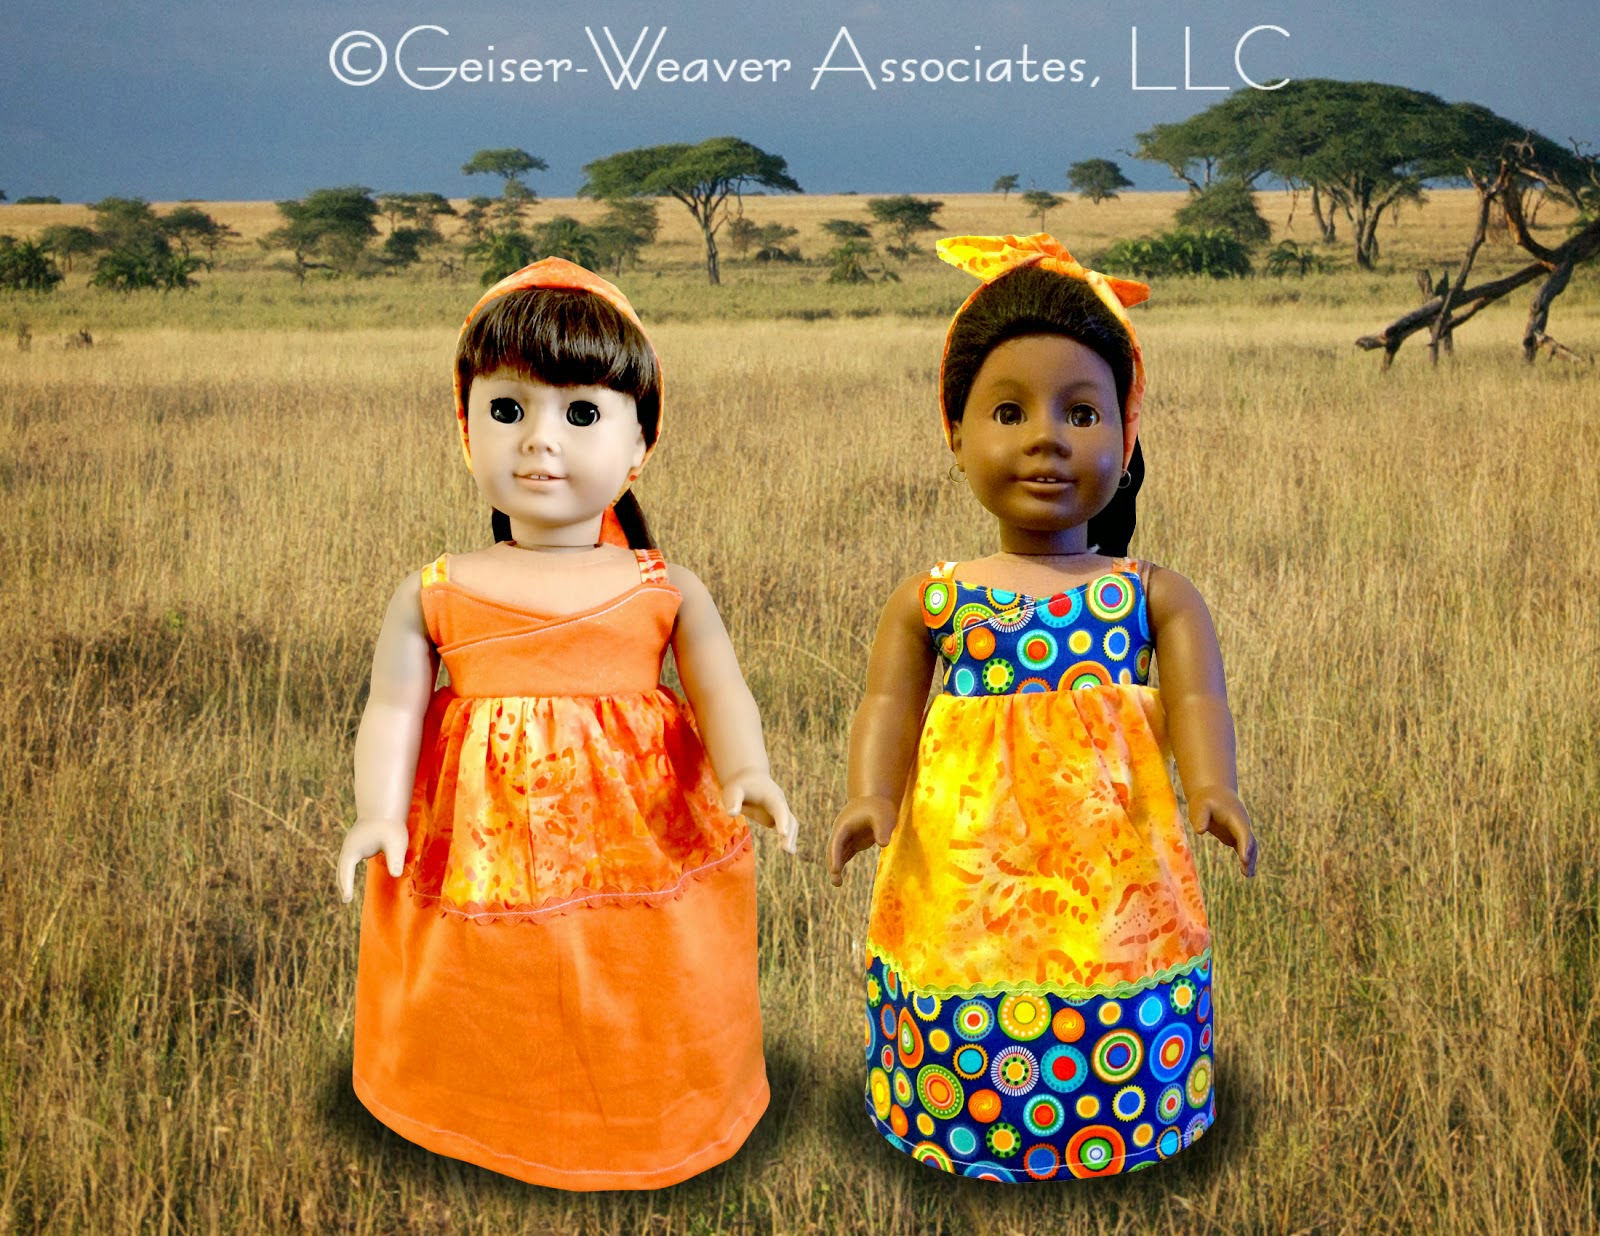 Imagine No Malaria campaign doll clothes by Geiser-Weaver Associates, LLC